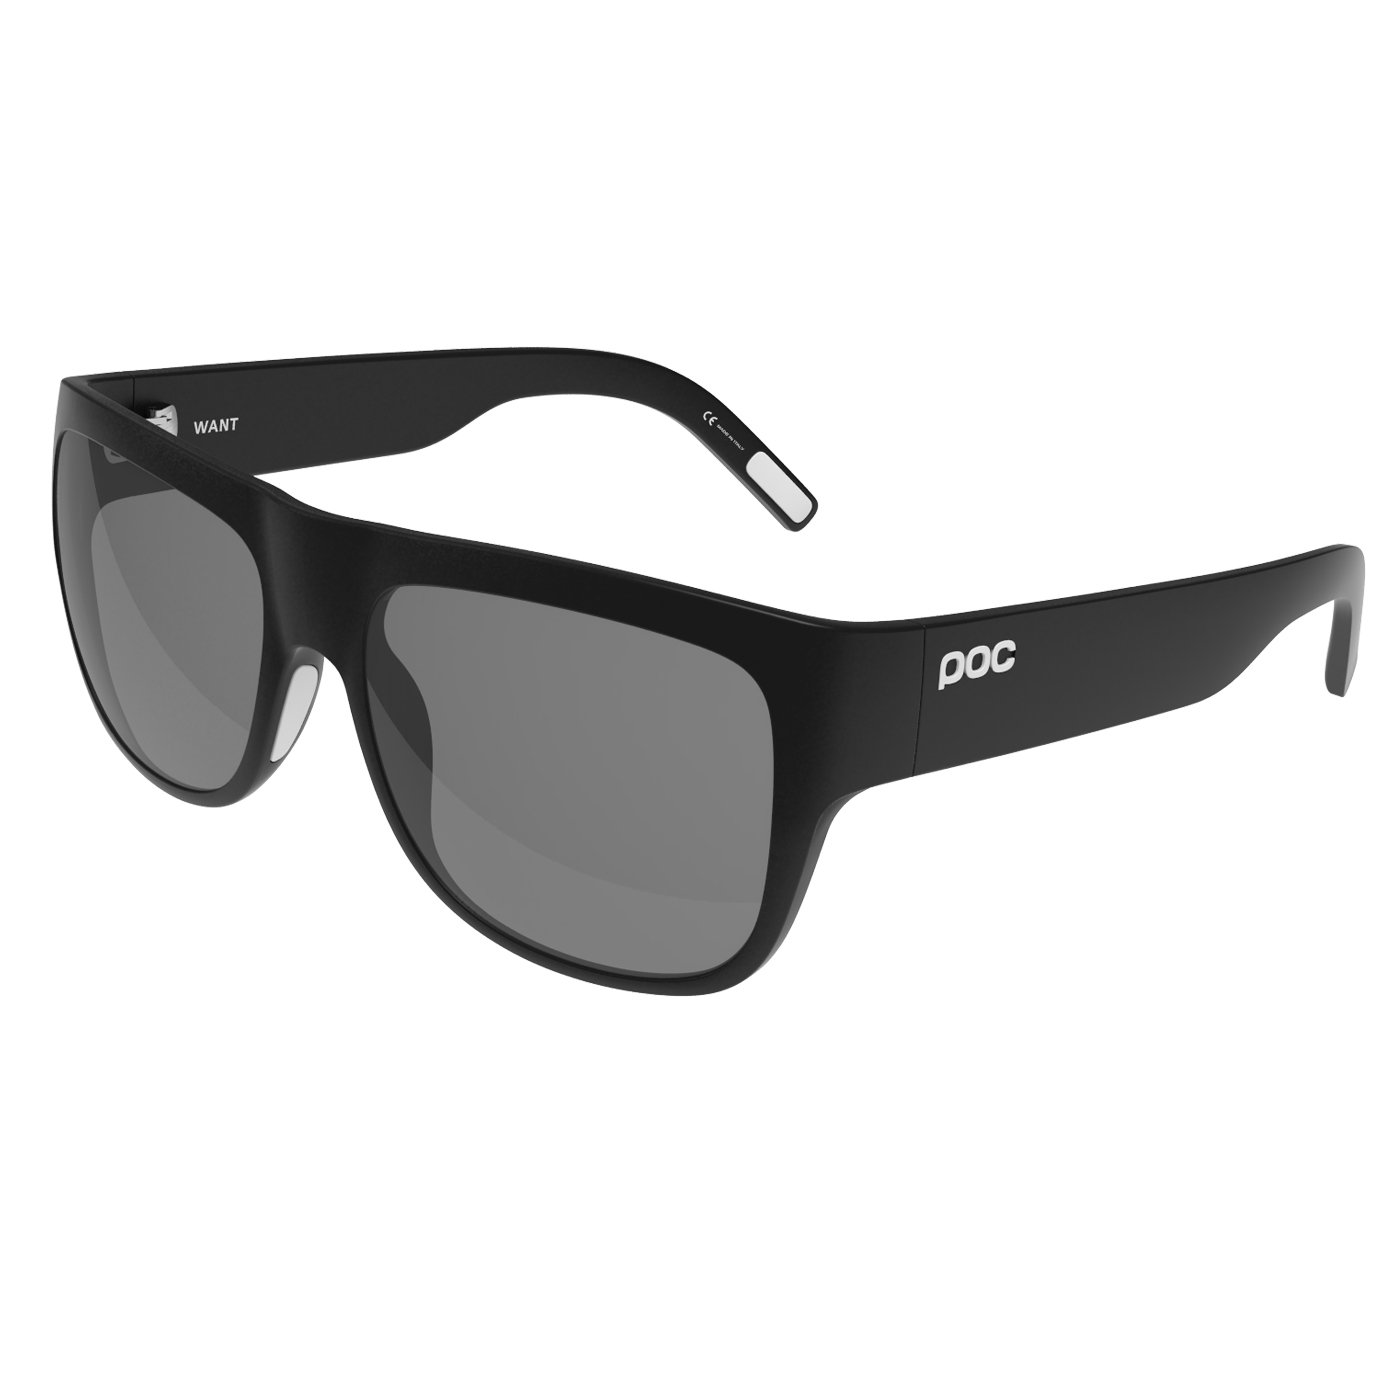 TALLA 14.9. POC DO Low - Gafas de esquí Unisex, Color Negro